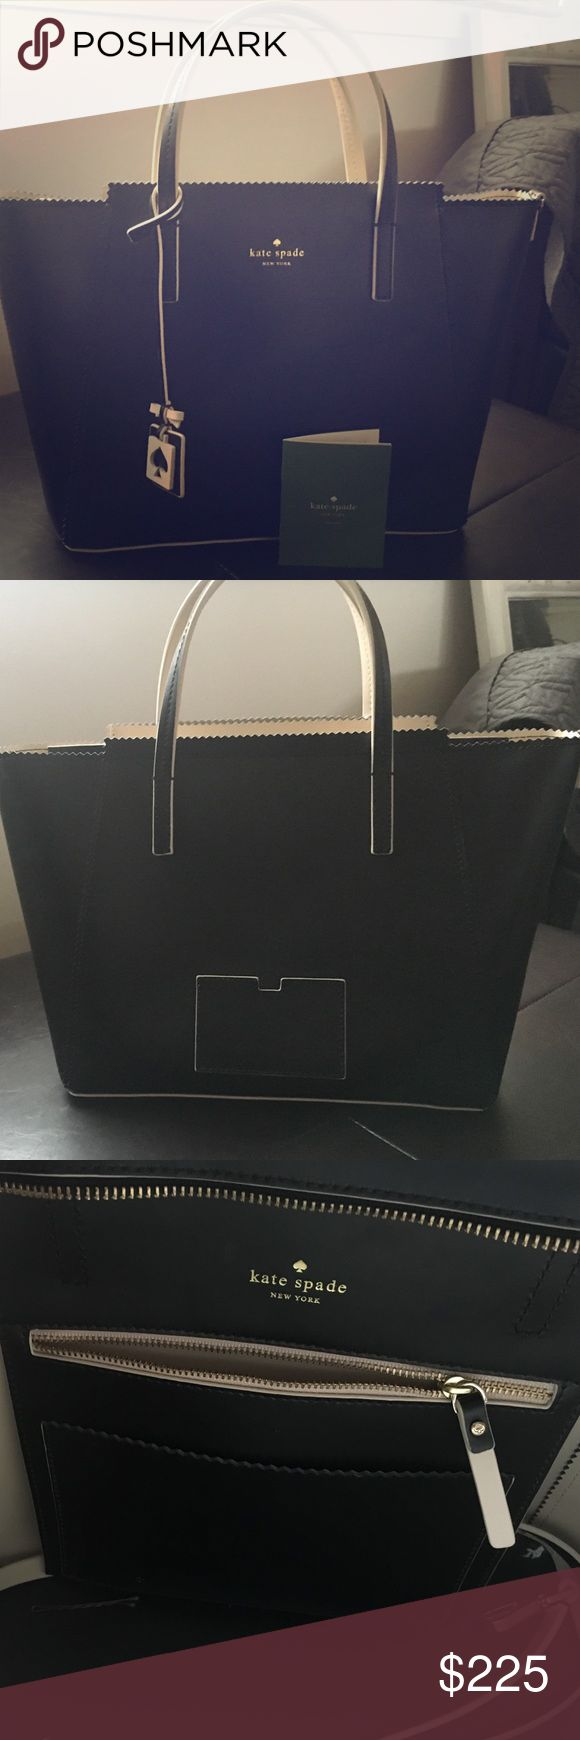 Kate Spade black and cream shoulder bag Barely used (maybe 3 times) Kate Spade black and cream shoulder bag with scalloped edges on the top. No scratches or marks. Comes with long shoulder strap but the dust bag was misplaced in our move. Excellent condition. Price is firm. kate spade Bags Shoulder Bags